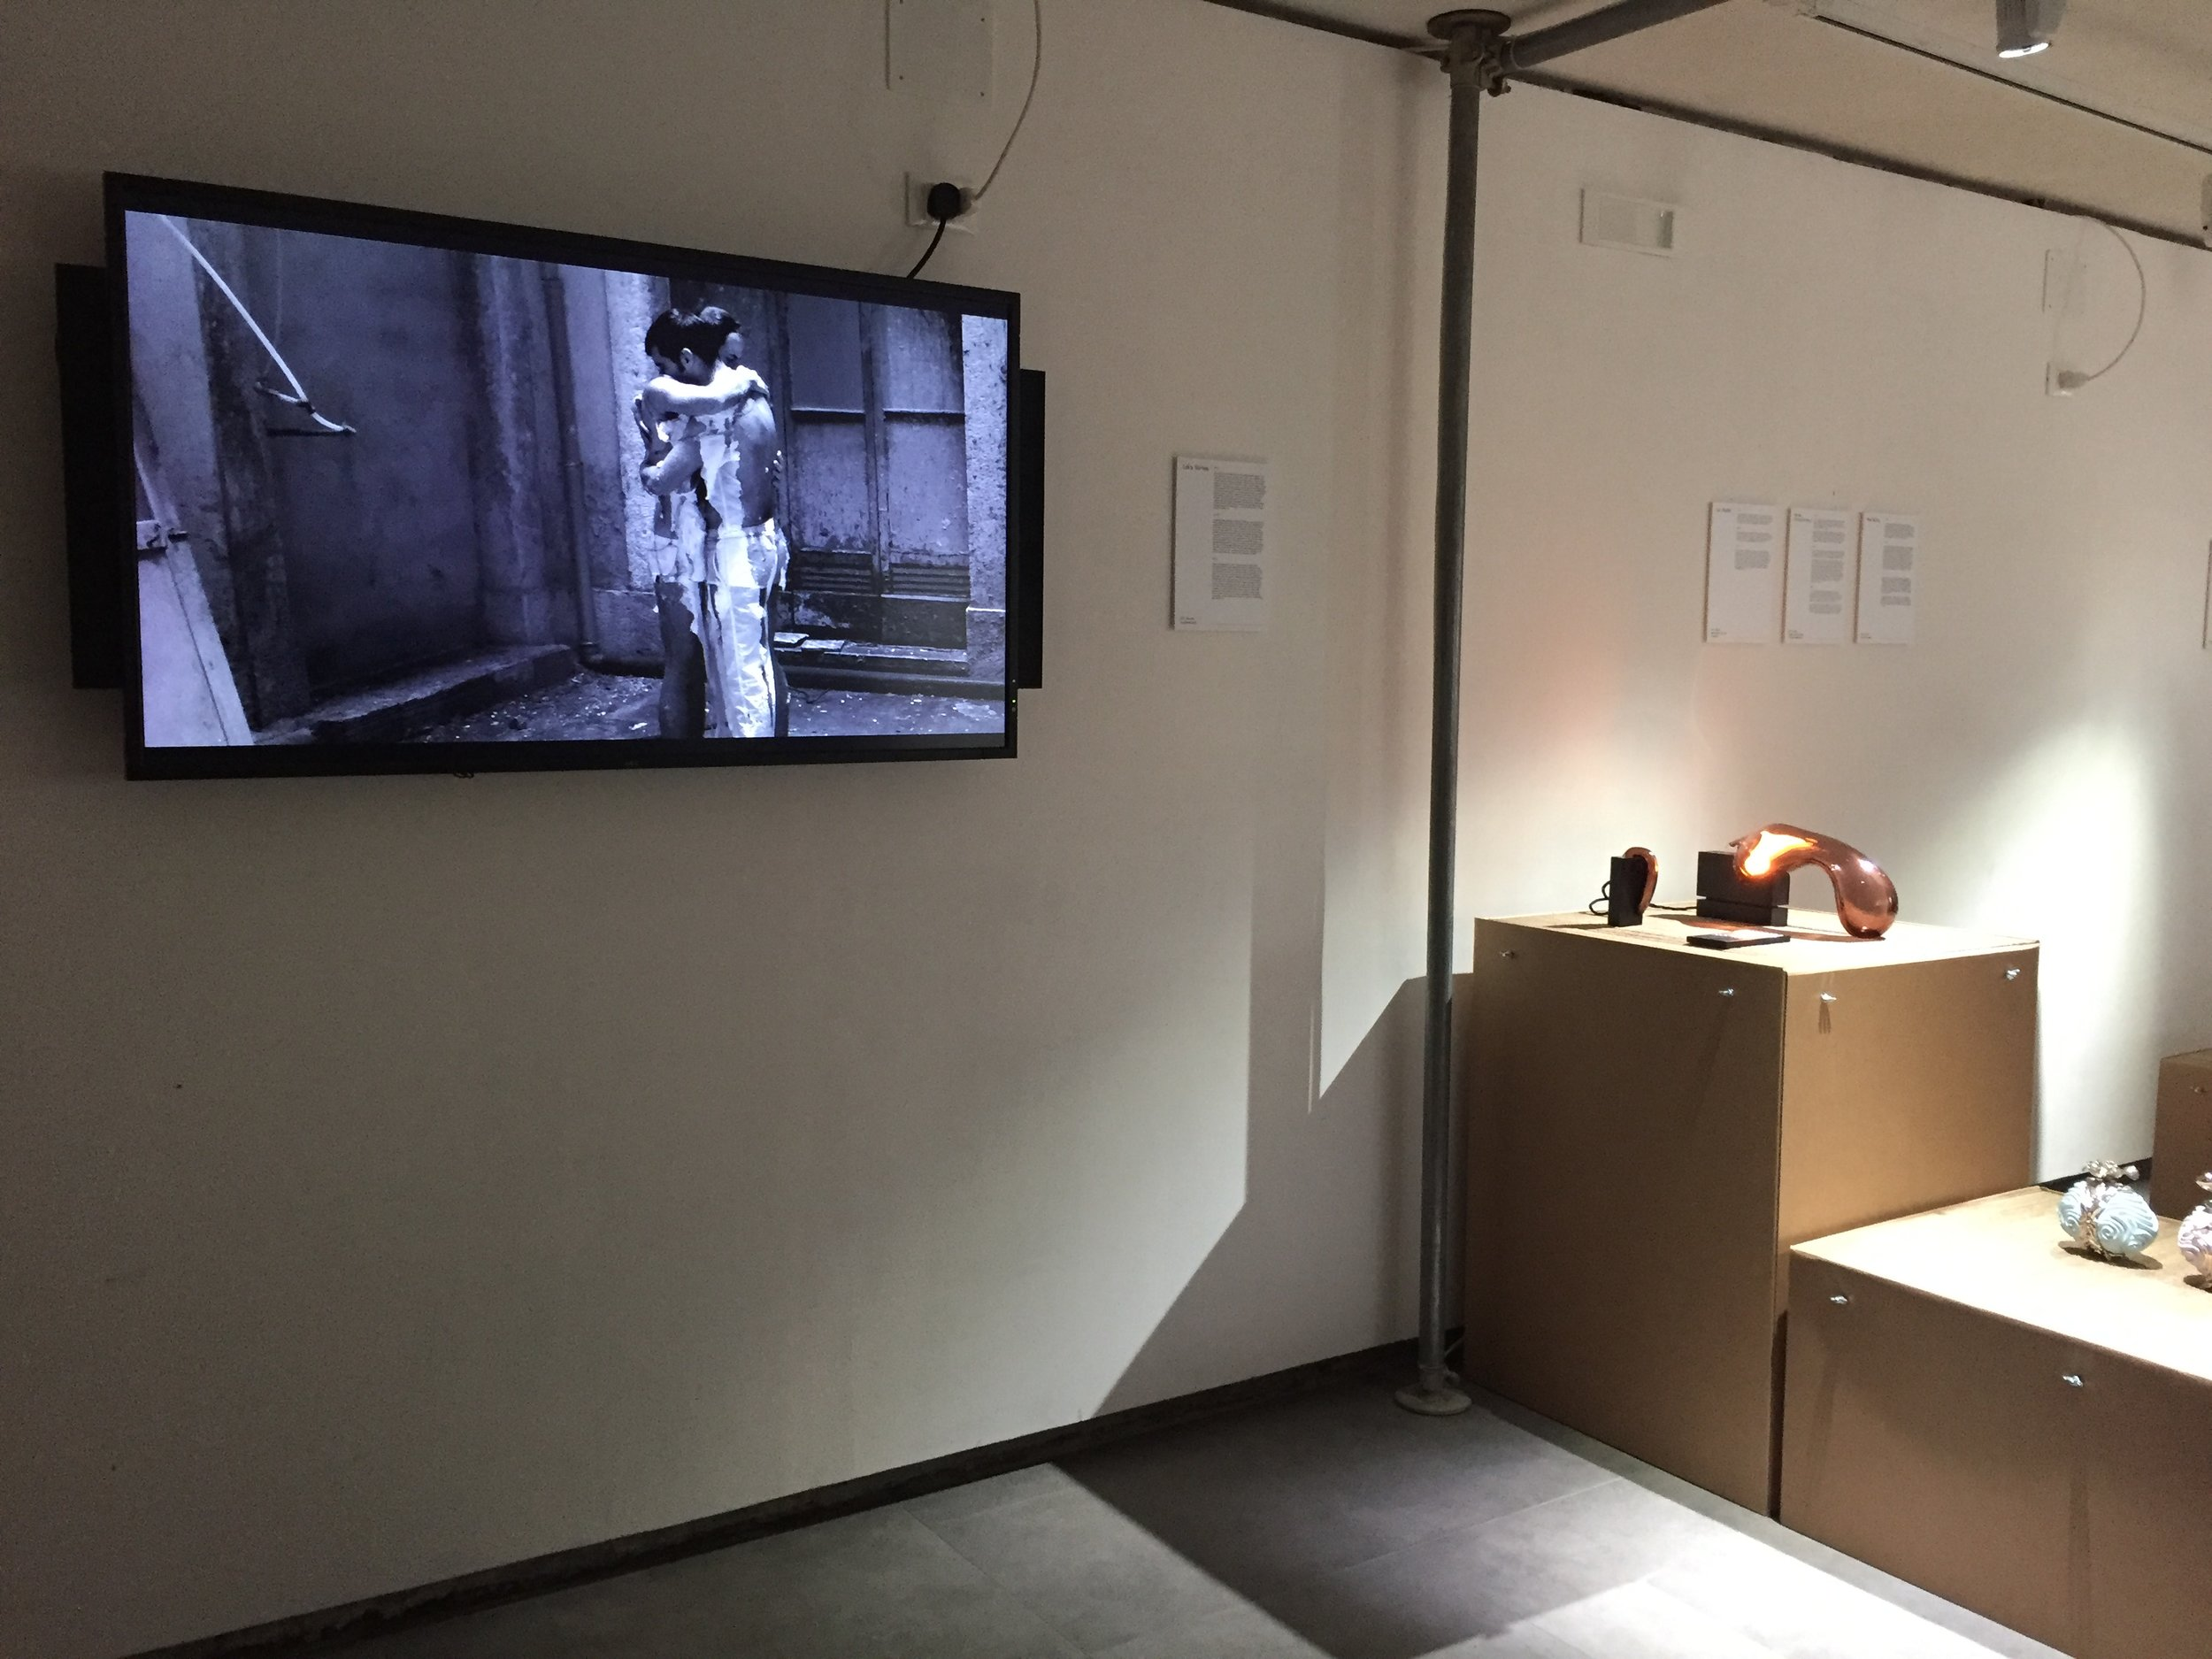 Why What Who/10 years of Fashion Artefact - 23 May - 17 JuneCastello, Fondamenta della Tana 2010, 2011, 2109 May 23rd – June 17th Open 11-19 every day, Closed Mondayhttps://www.designve.org